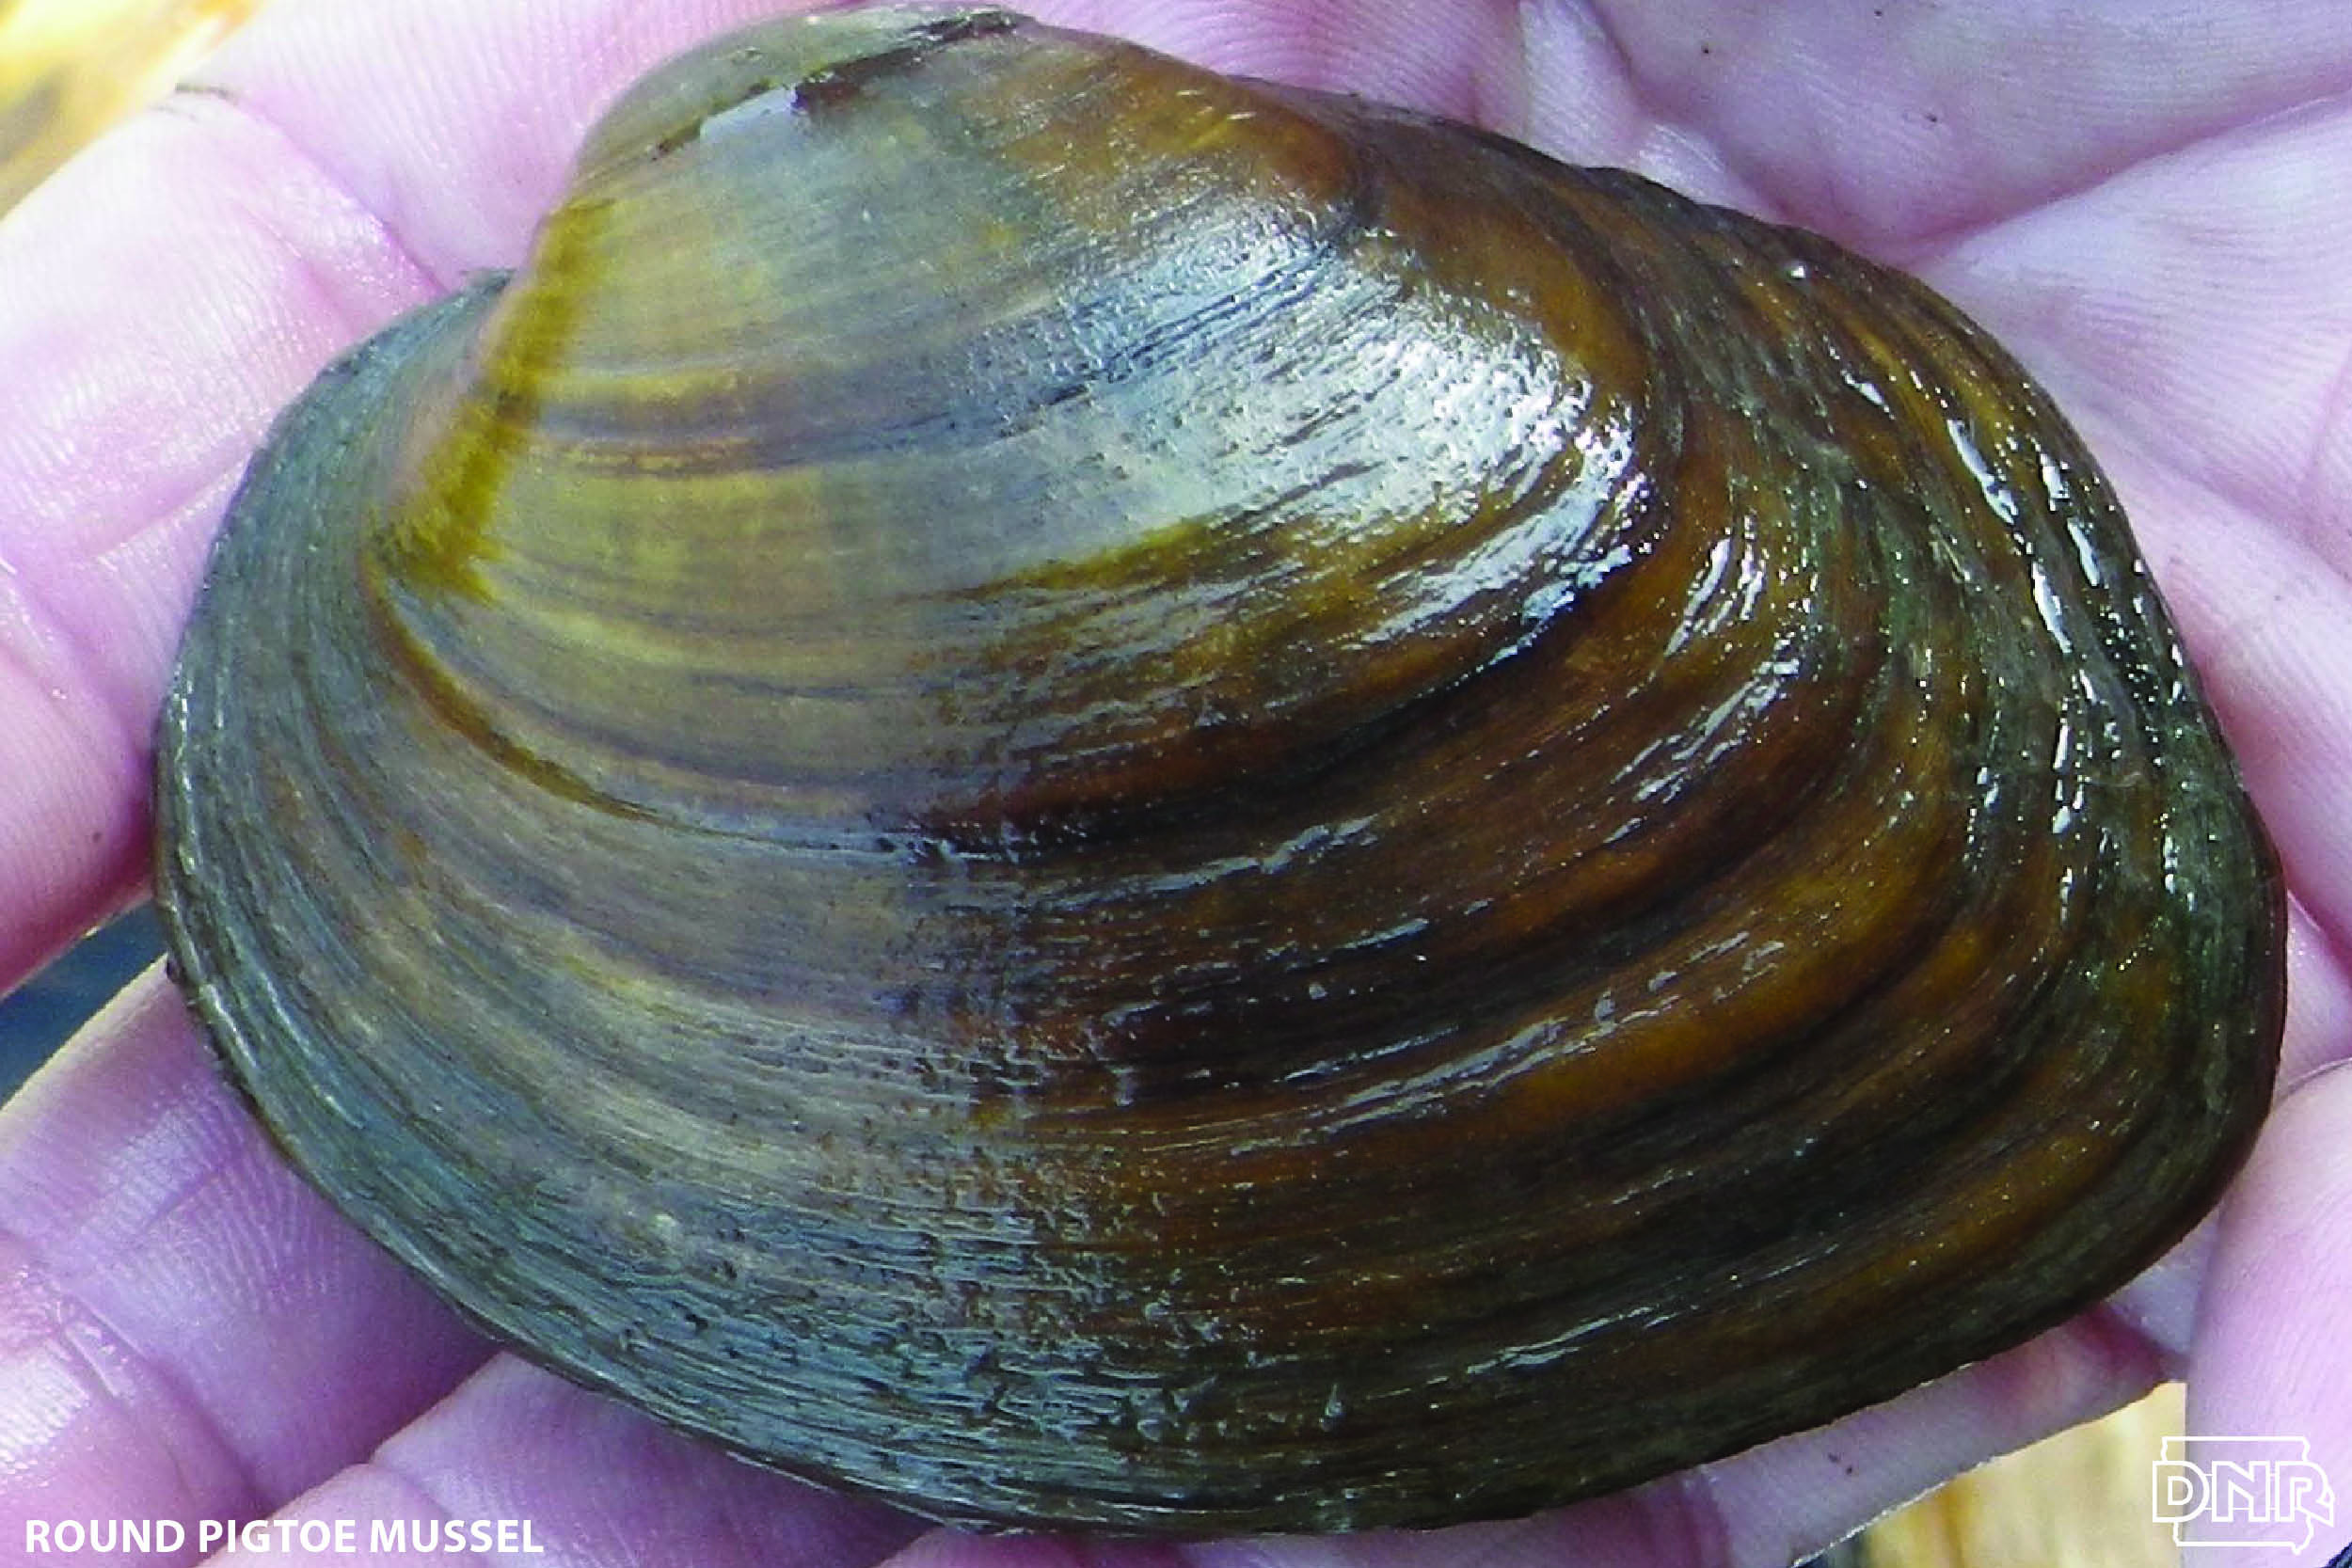 Cool things you should know about muckets and other mussels | Iowa DNR